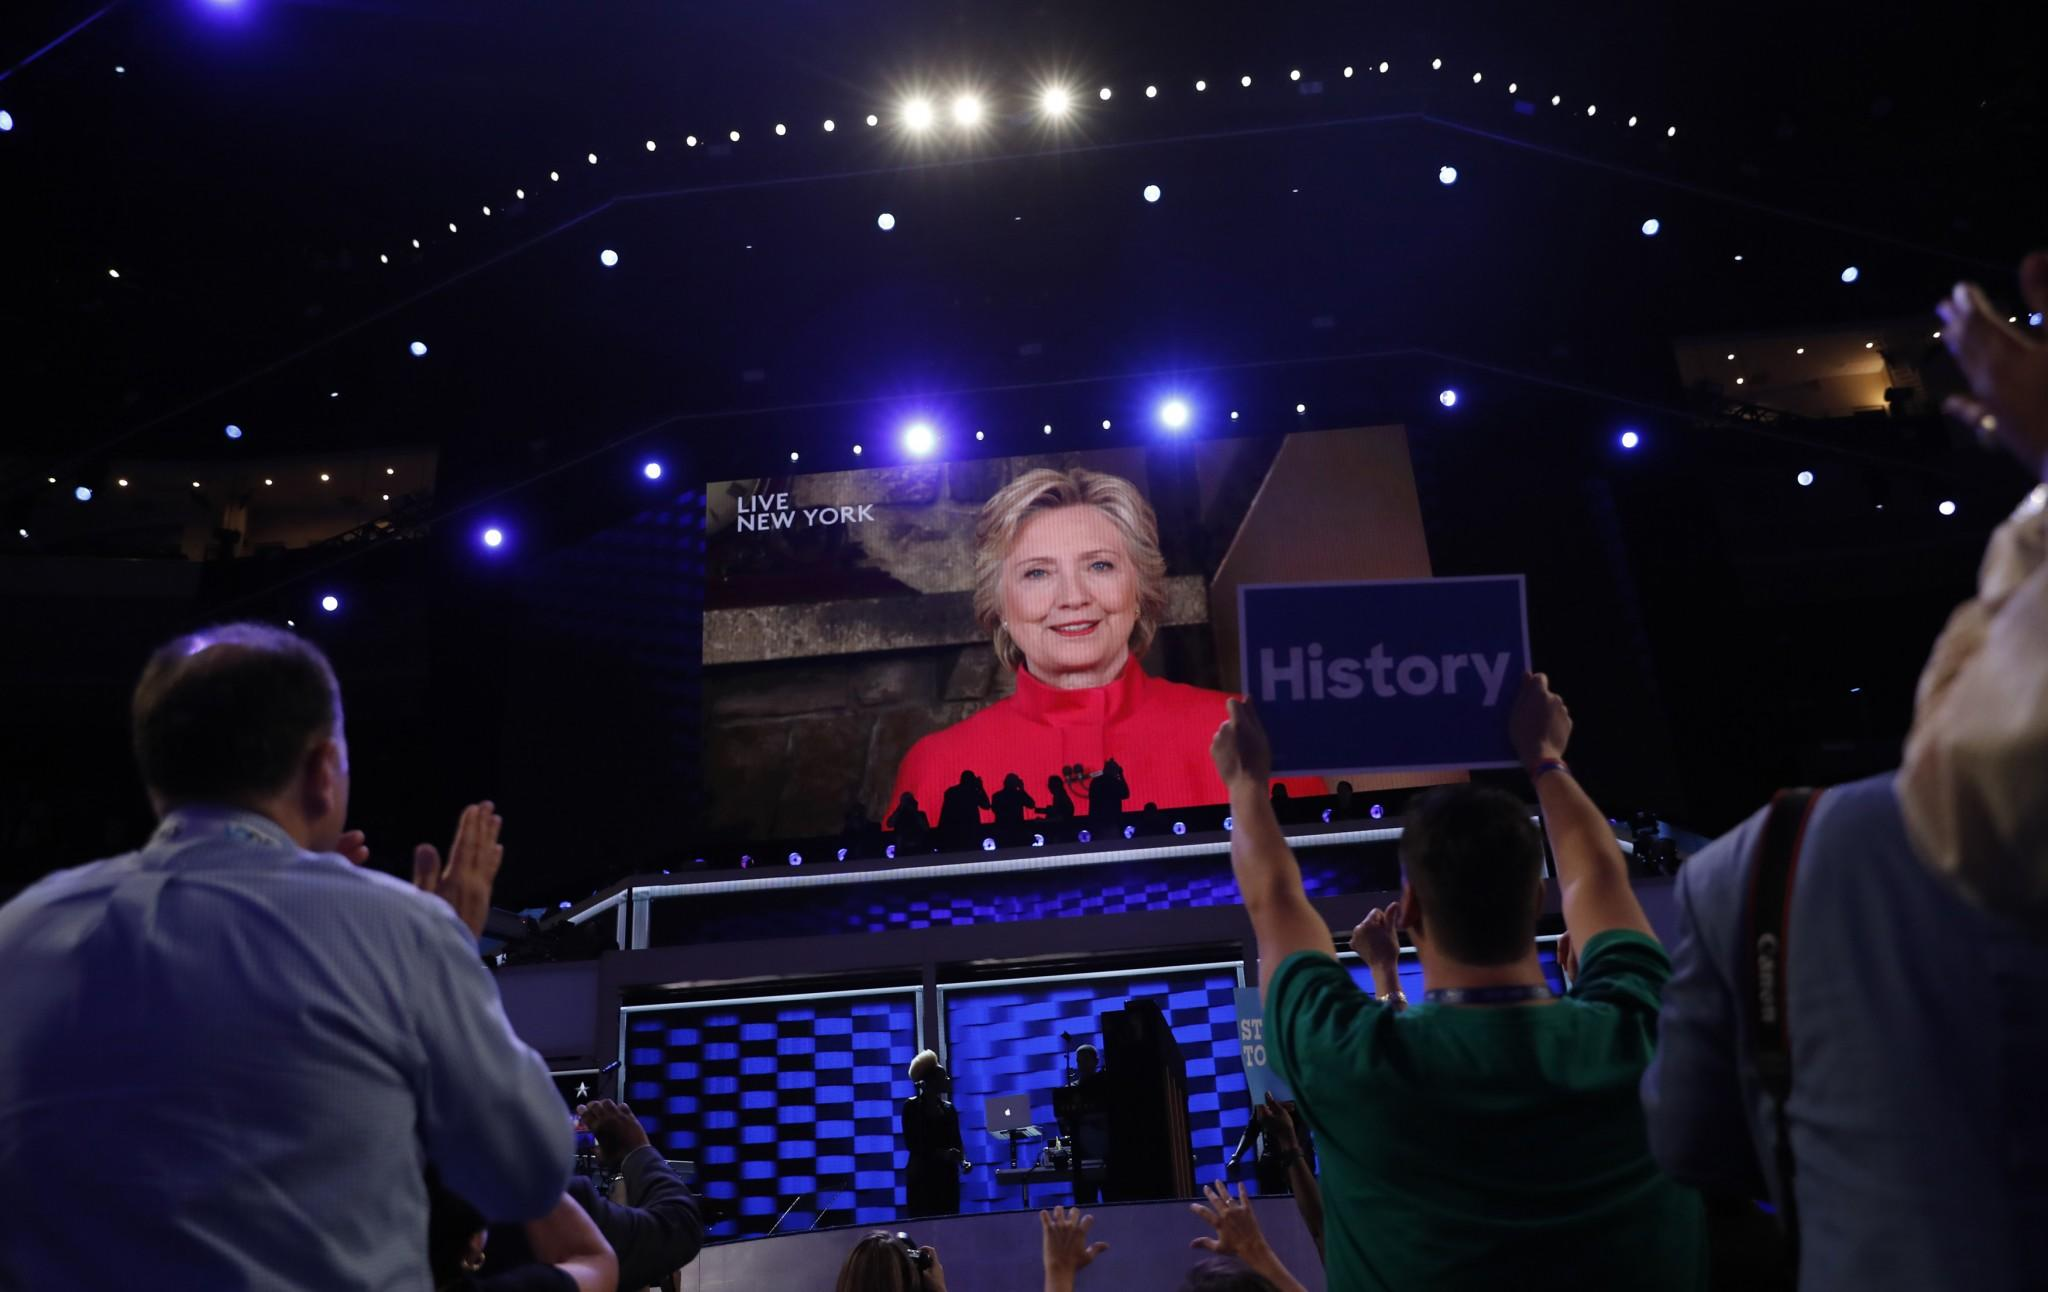 Hillary Clinton appears on a video monitor streamed live from New York at the Democratic National Convention on Tuesday. (Photo: Mark Kauzlarich/Reuters)